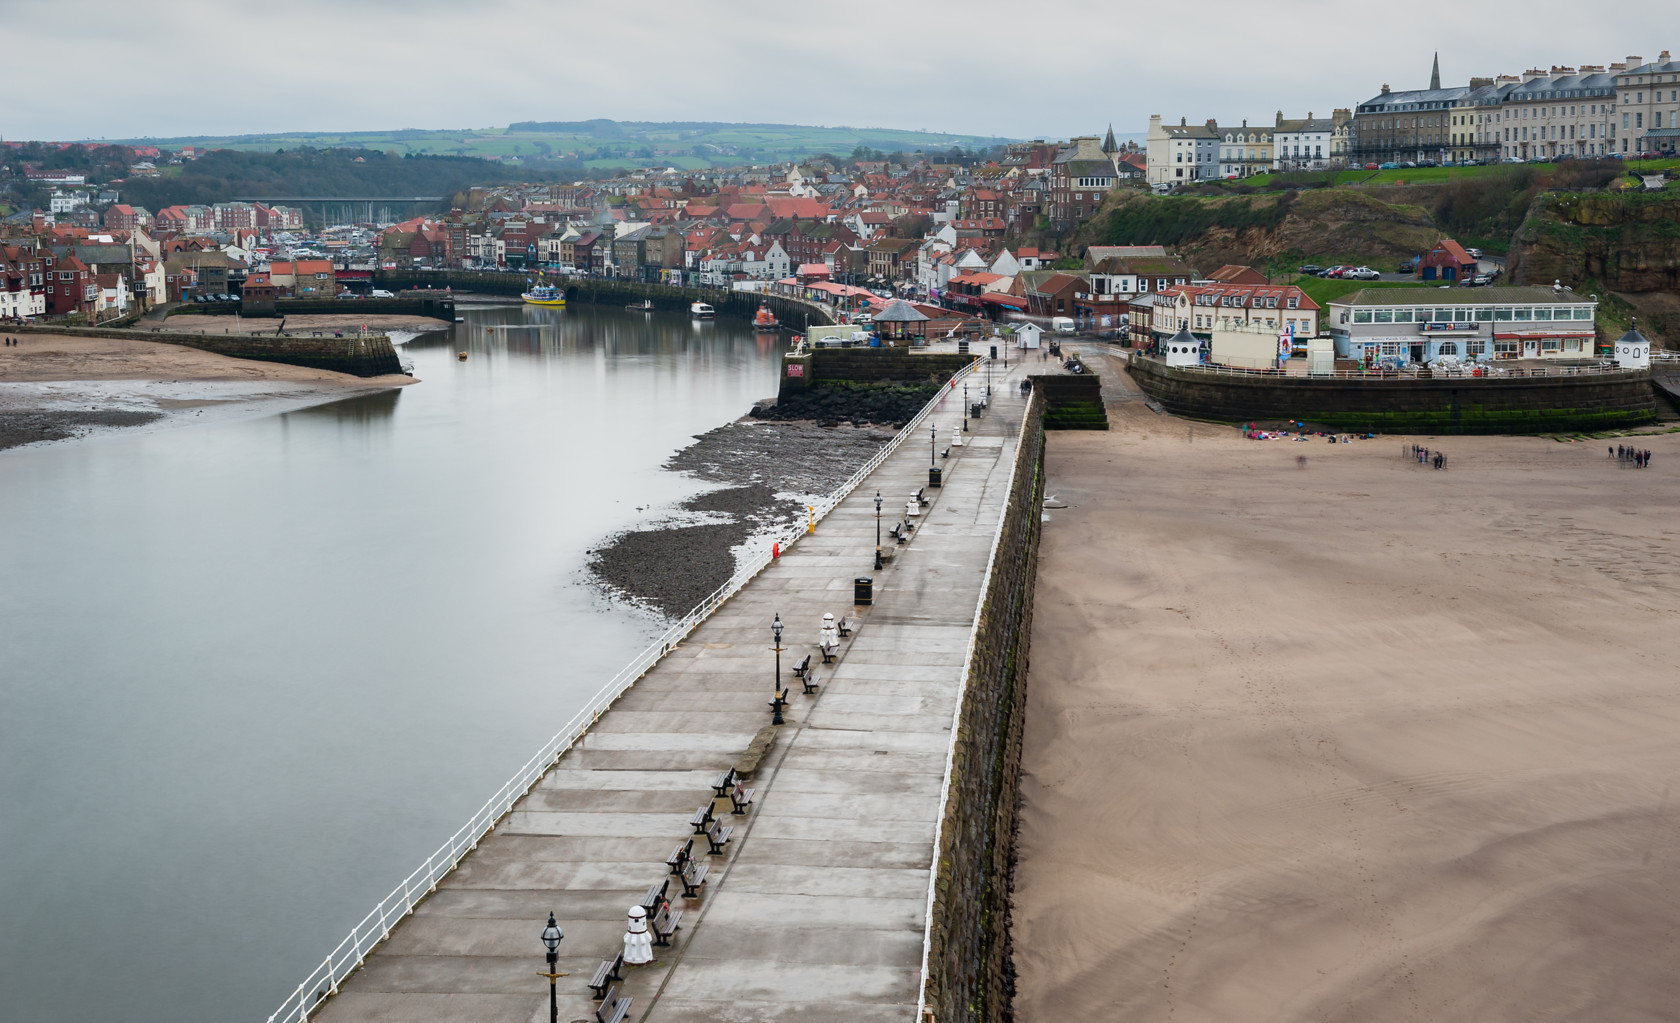 view from a lighthouse, whitby (ref yo 93)